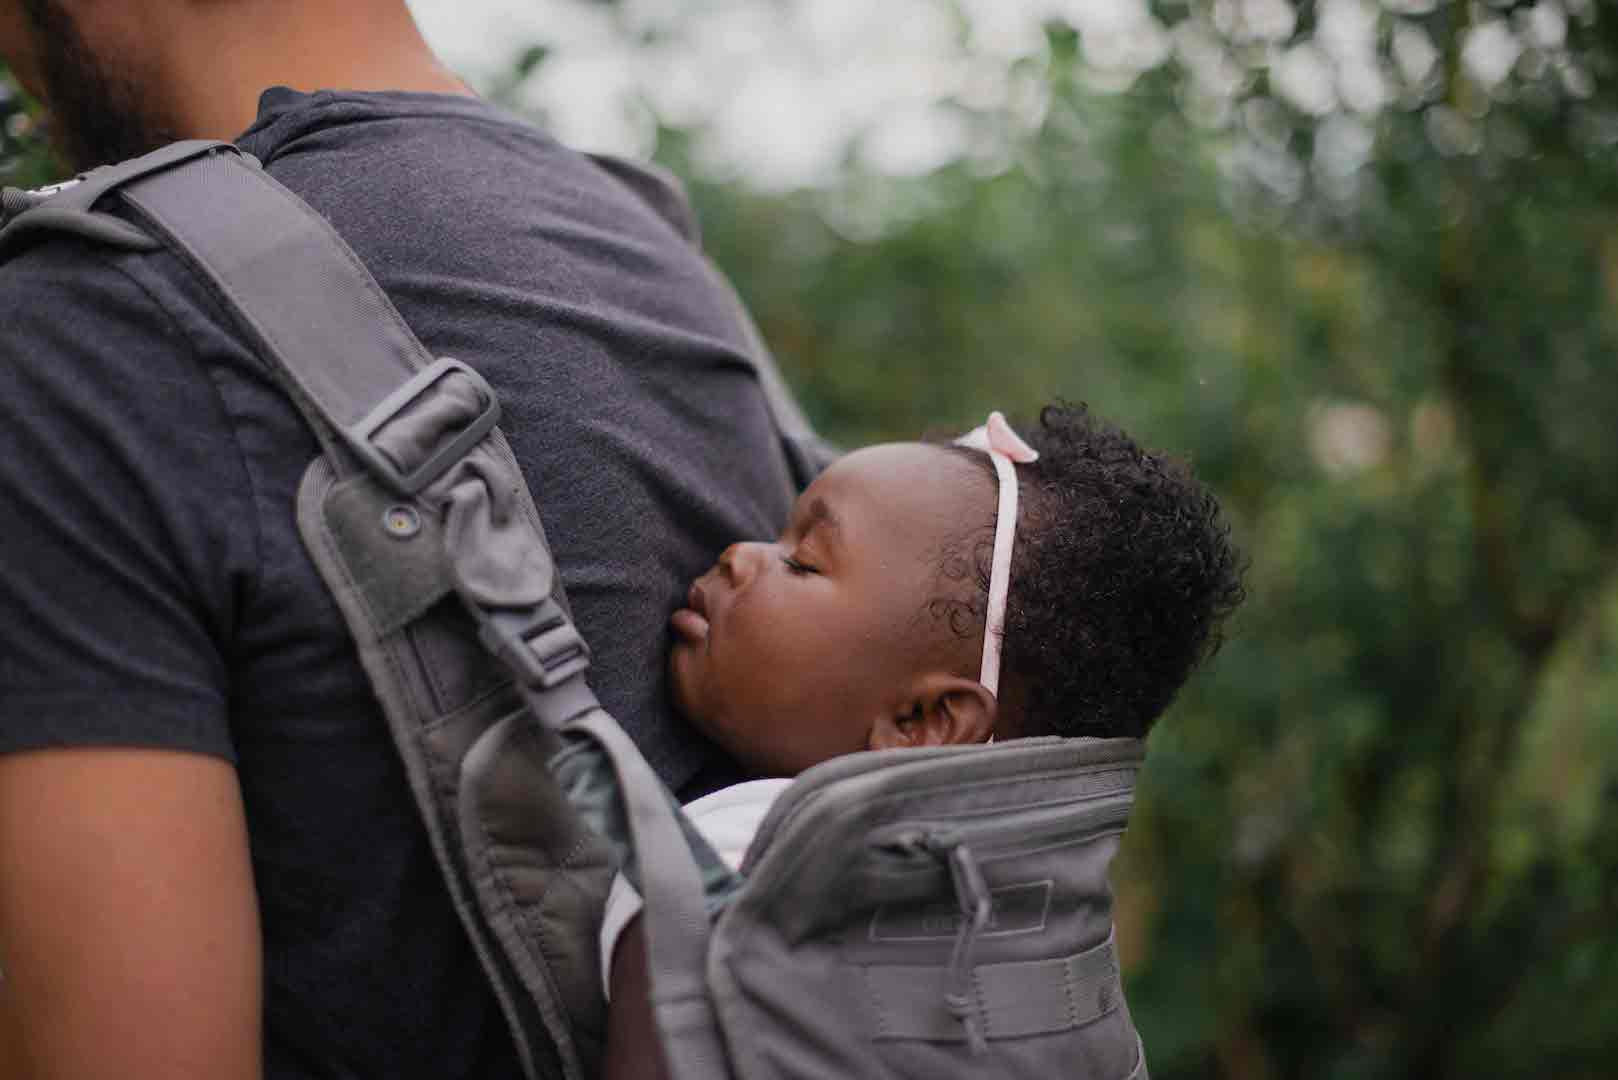 is it safe for baby to sleep in baby carrier